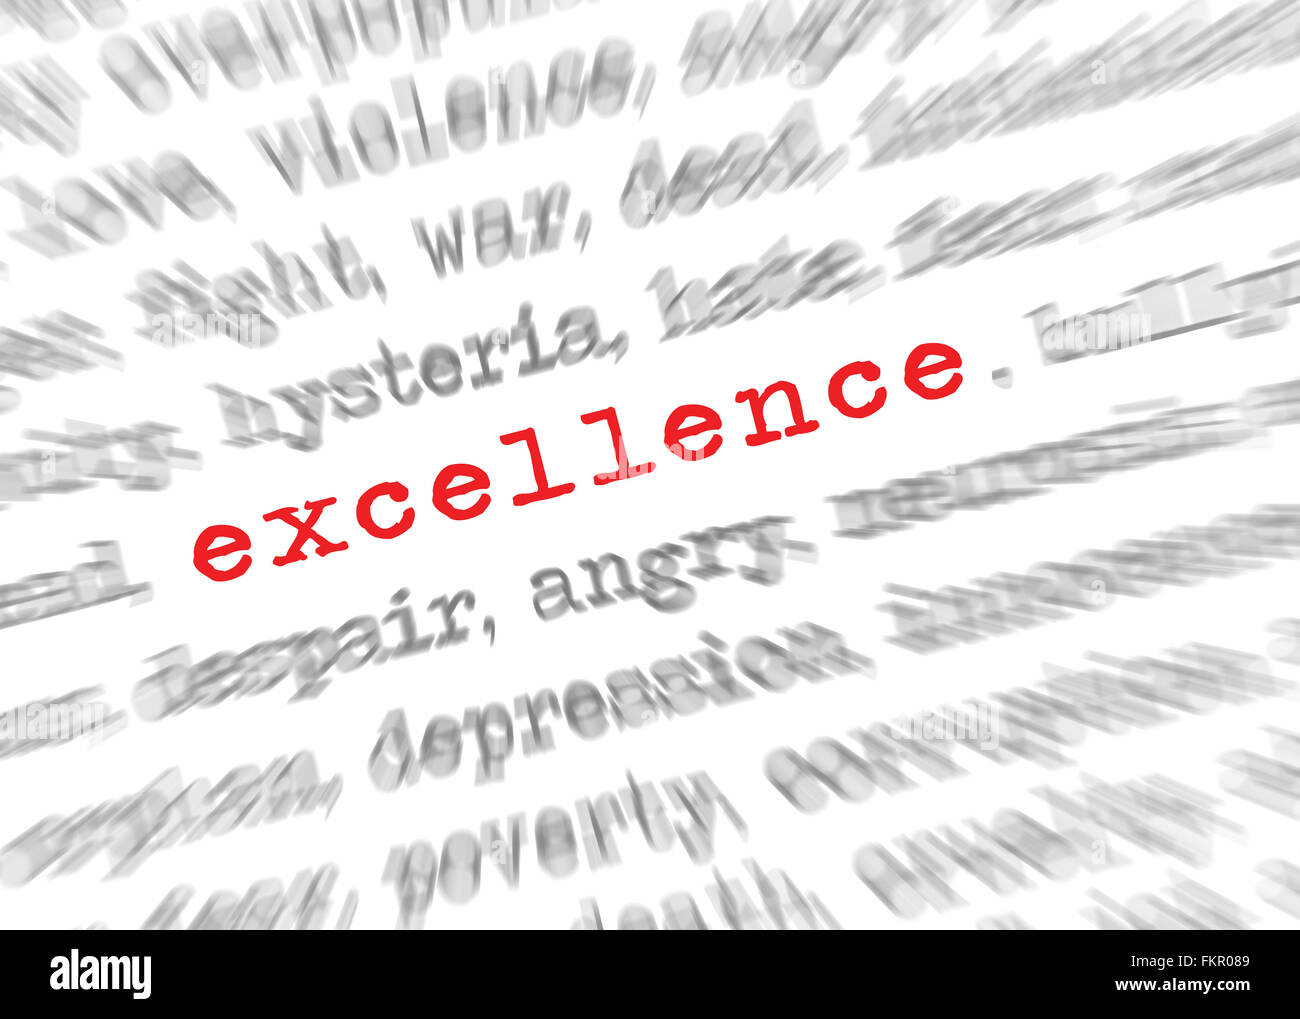 Blured text zoom effect with focus on excellence - Stock Image